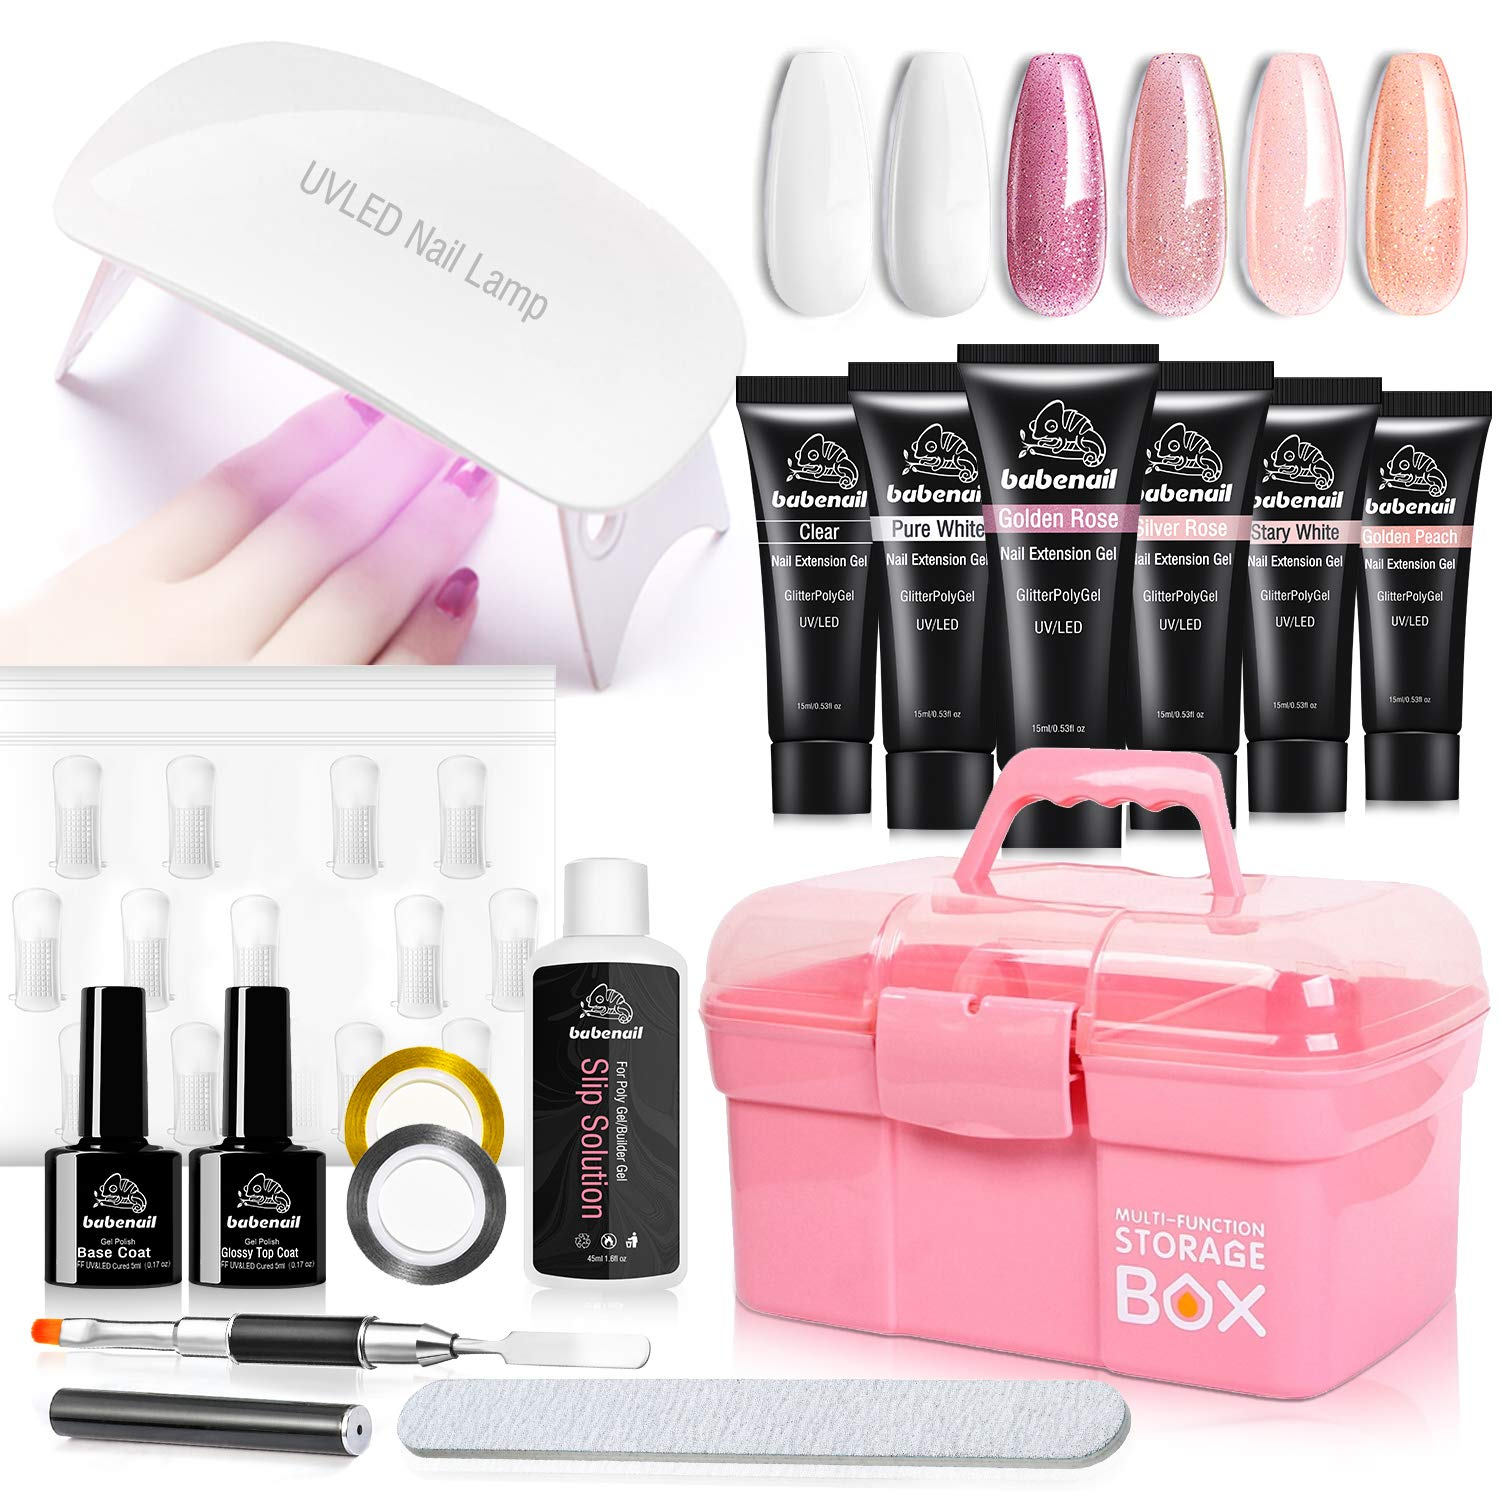 BebaNail Polygel Builder Nail KIt - 6PCS PolyGel Base & Top Coat Portable With 6W UV LED Lamp Poly Gel Extension Nail Kit Slip Solution Nail Art Accessories with Storage Box Manicure Tools Set